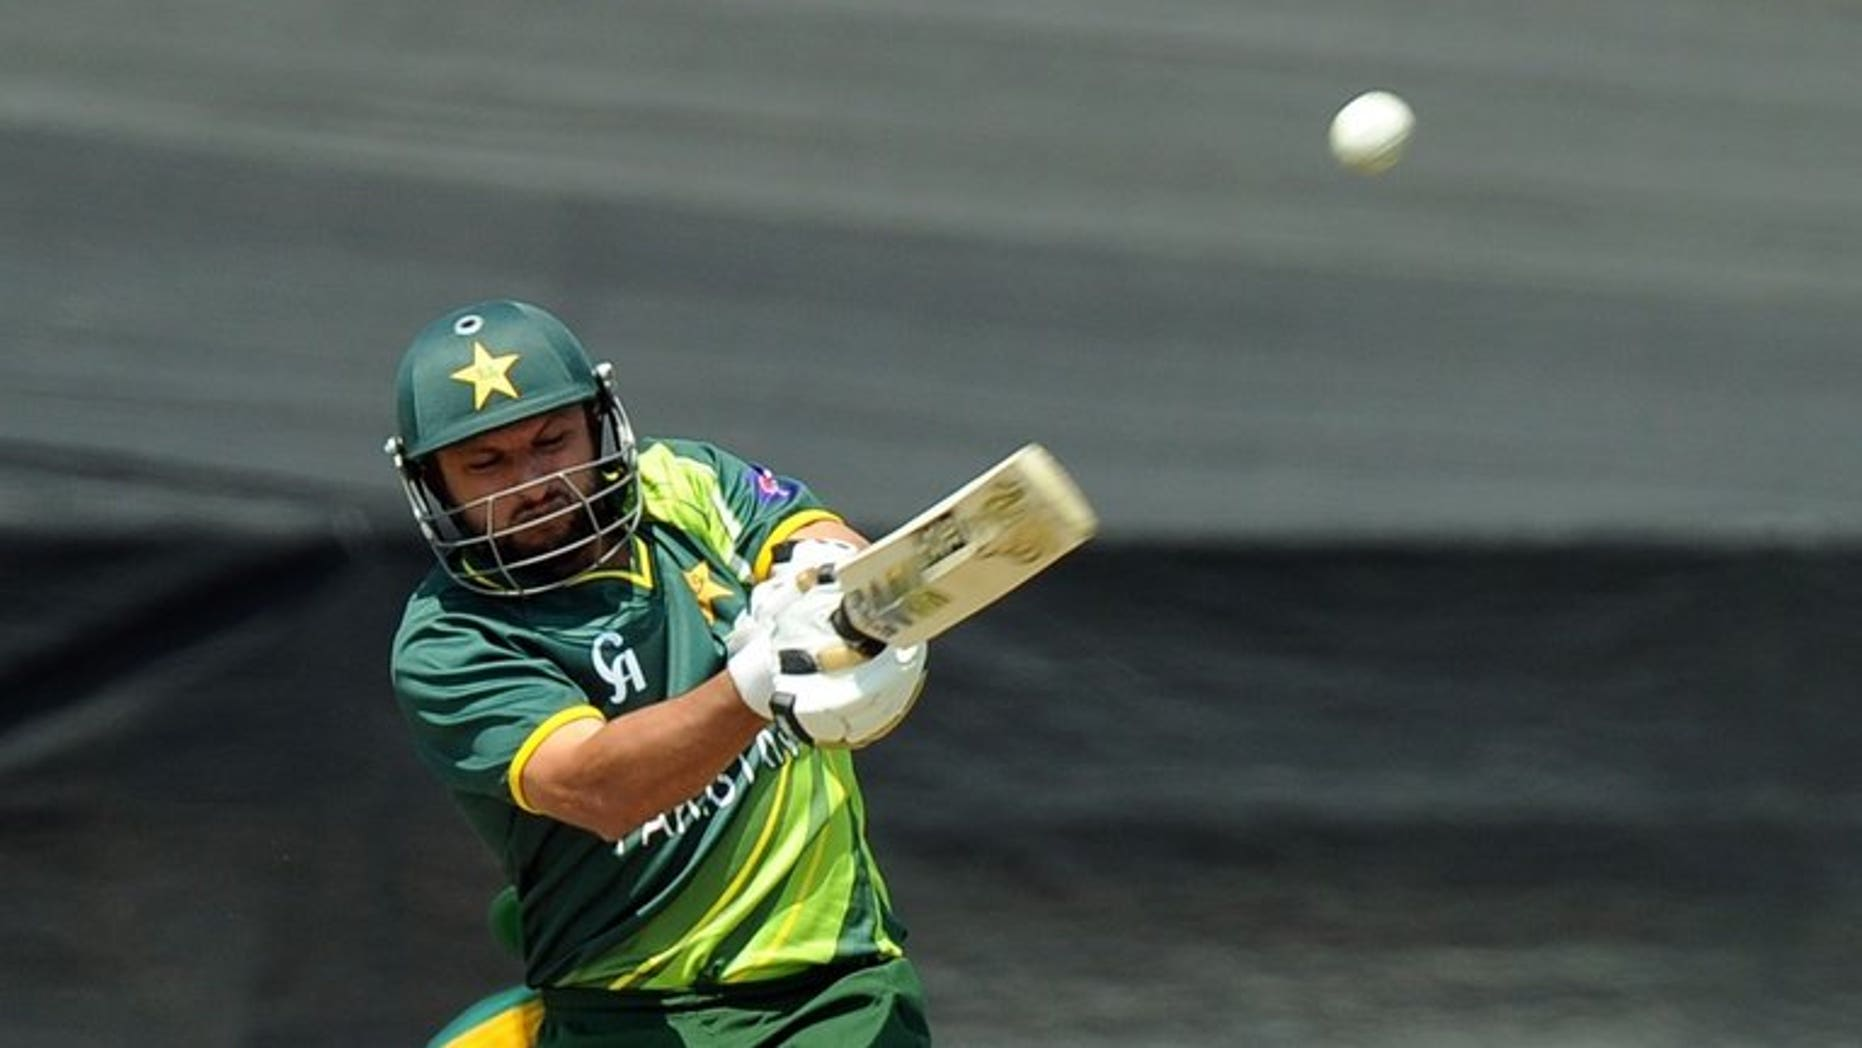 Pakistan's cricketer Shahid Afridi hits the ball in Benoni at Willowmoore Park on March 24, 2013. Hugely contrasting half-centuries by Afridi and Misbah-ul-Haq rescued Pakistan from a perilous position as they reached 224 for nine against the West Indies in the first one-day international.